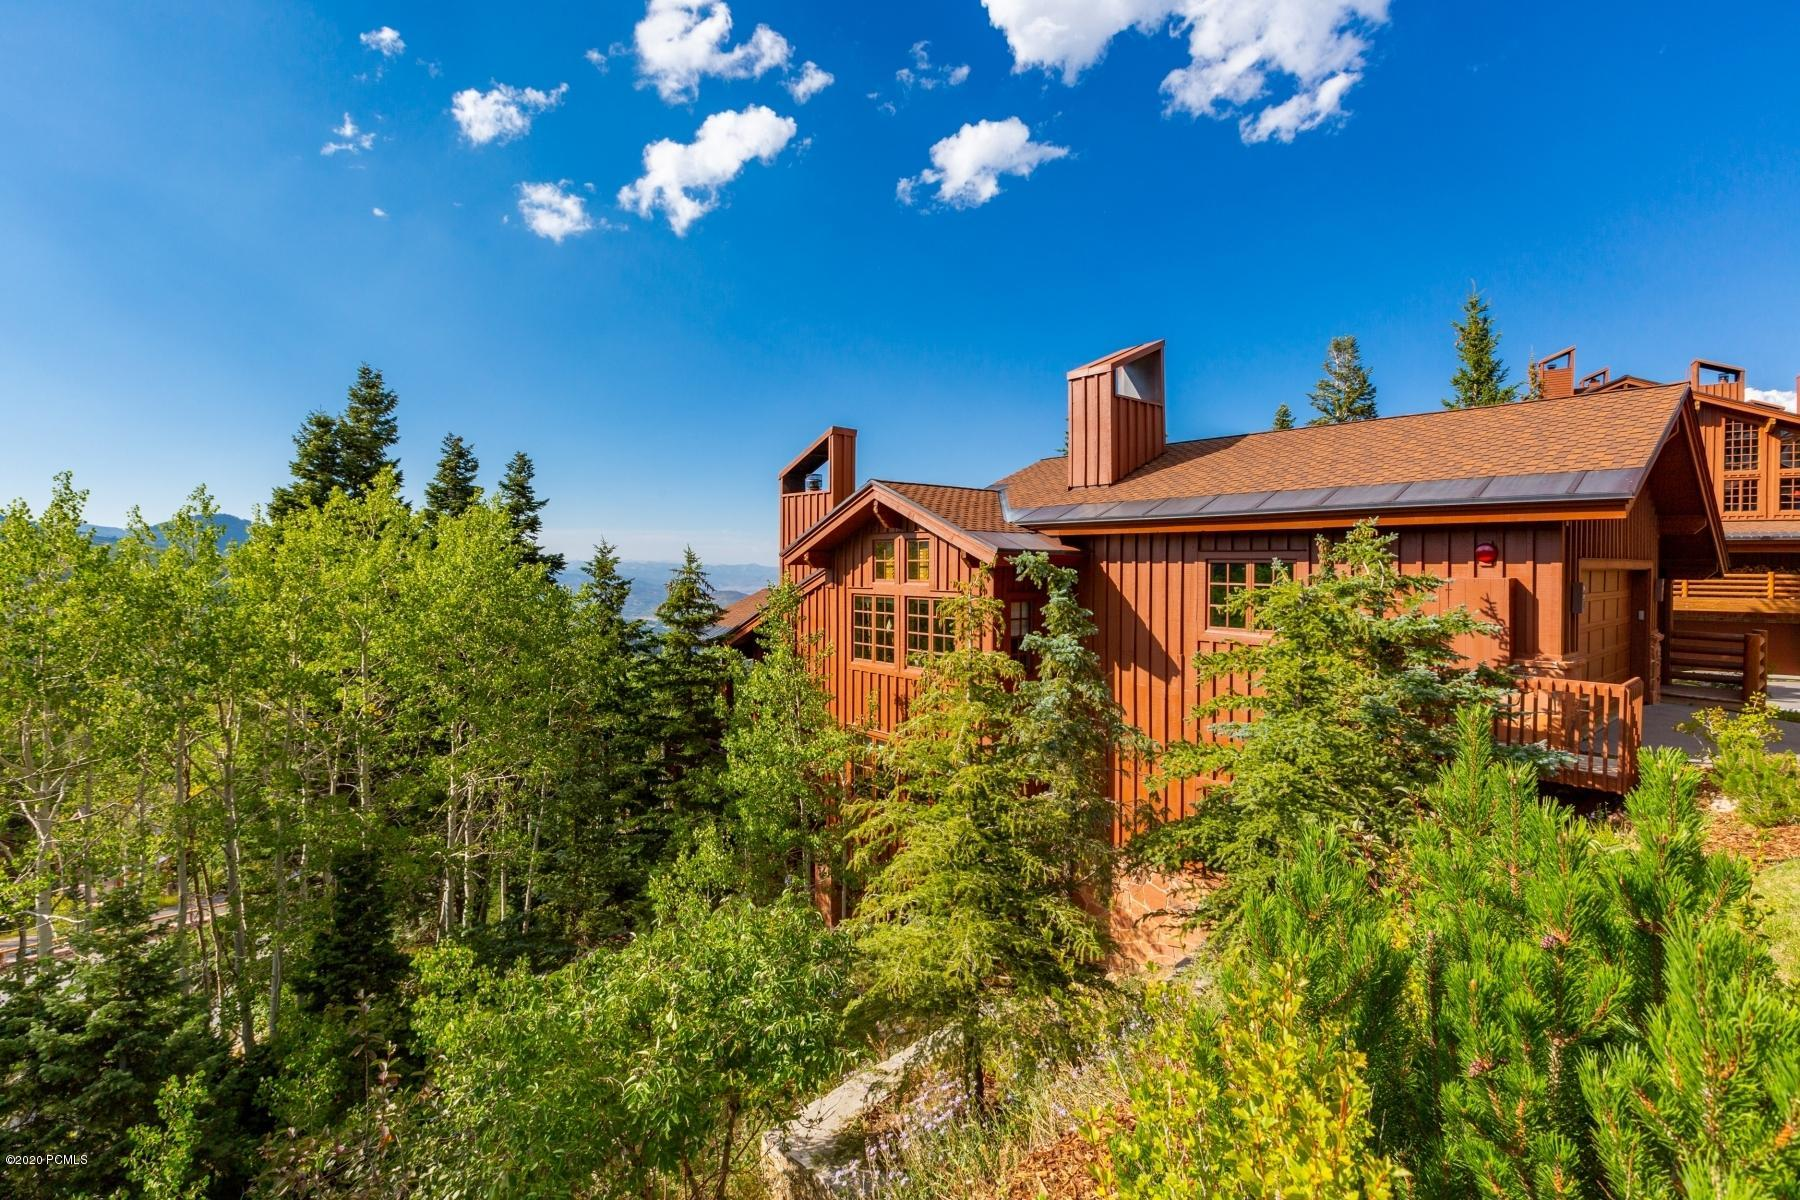 8200 Royal Street, Park City, Utah 84060, 6 Bedrooms Bedrooms, ,8 BathroomsBathrooms,Condominium,For Sale,Royal,20190109112430415765000000